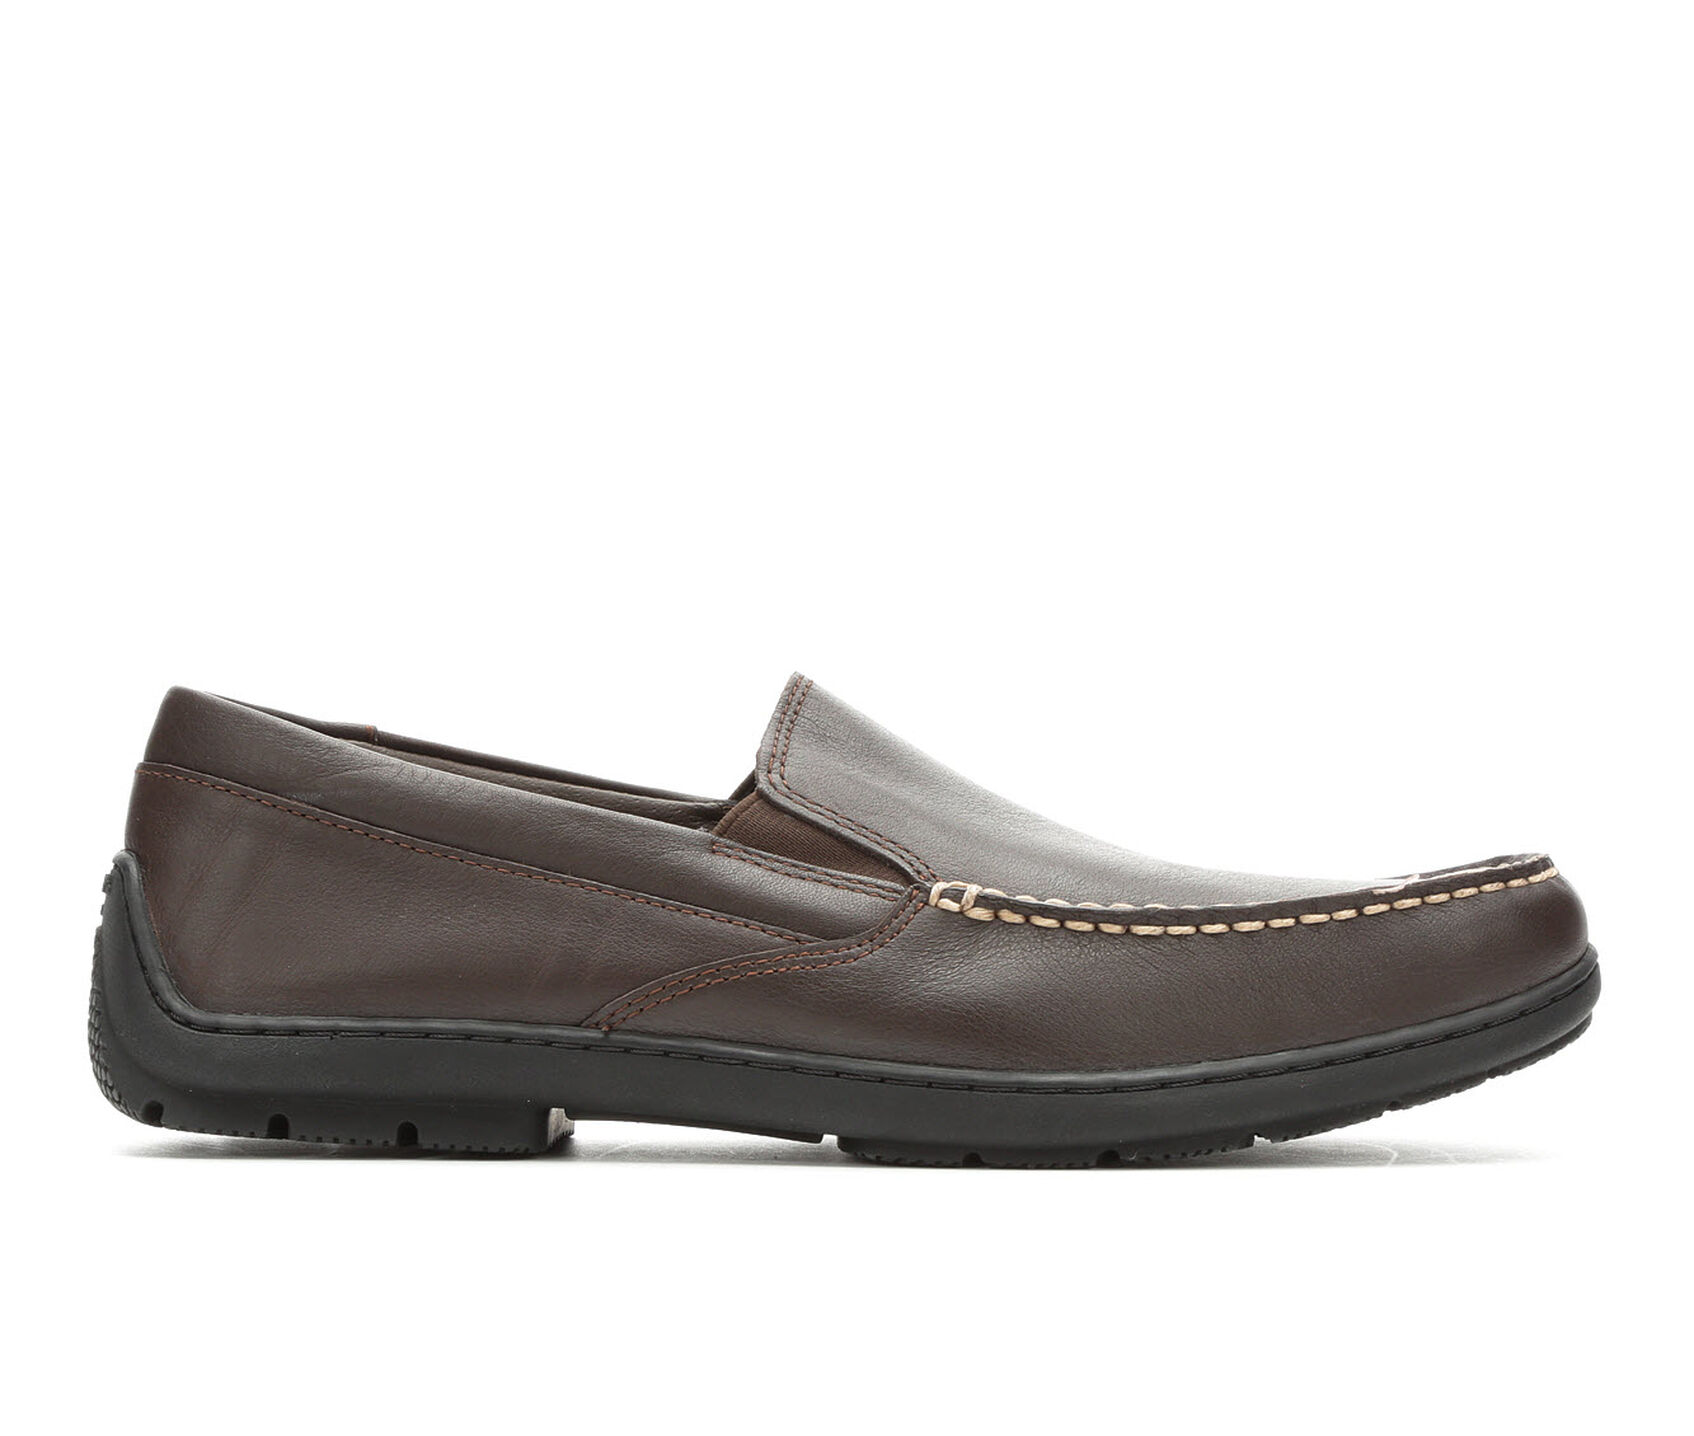 fb1b61a2e6 Men s Sperry Monterey Loafers